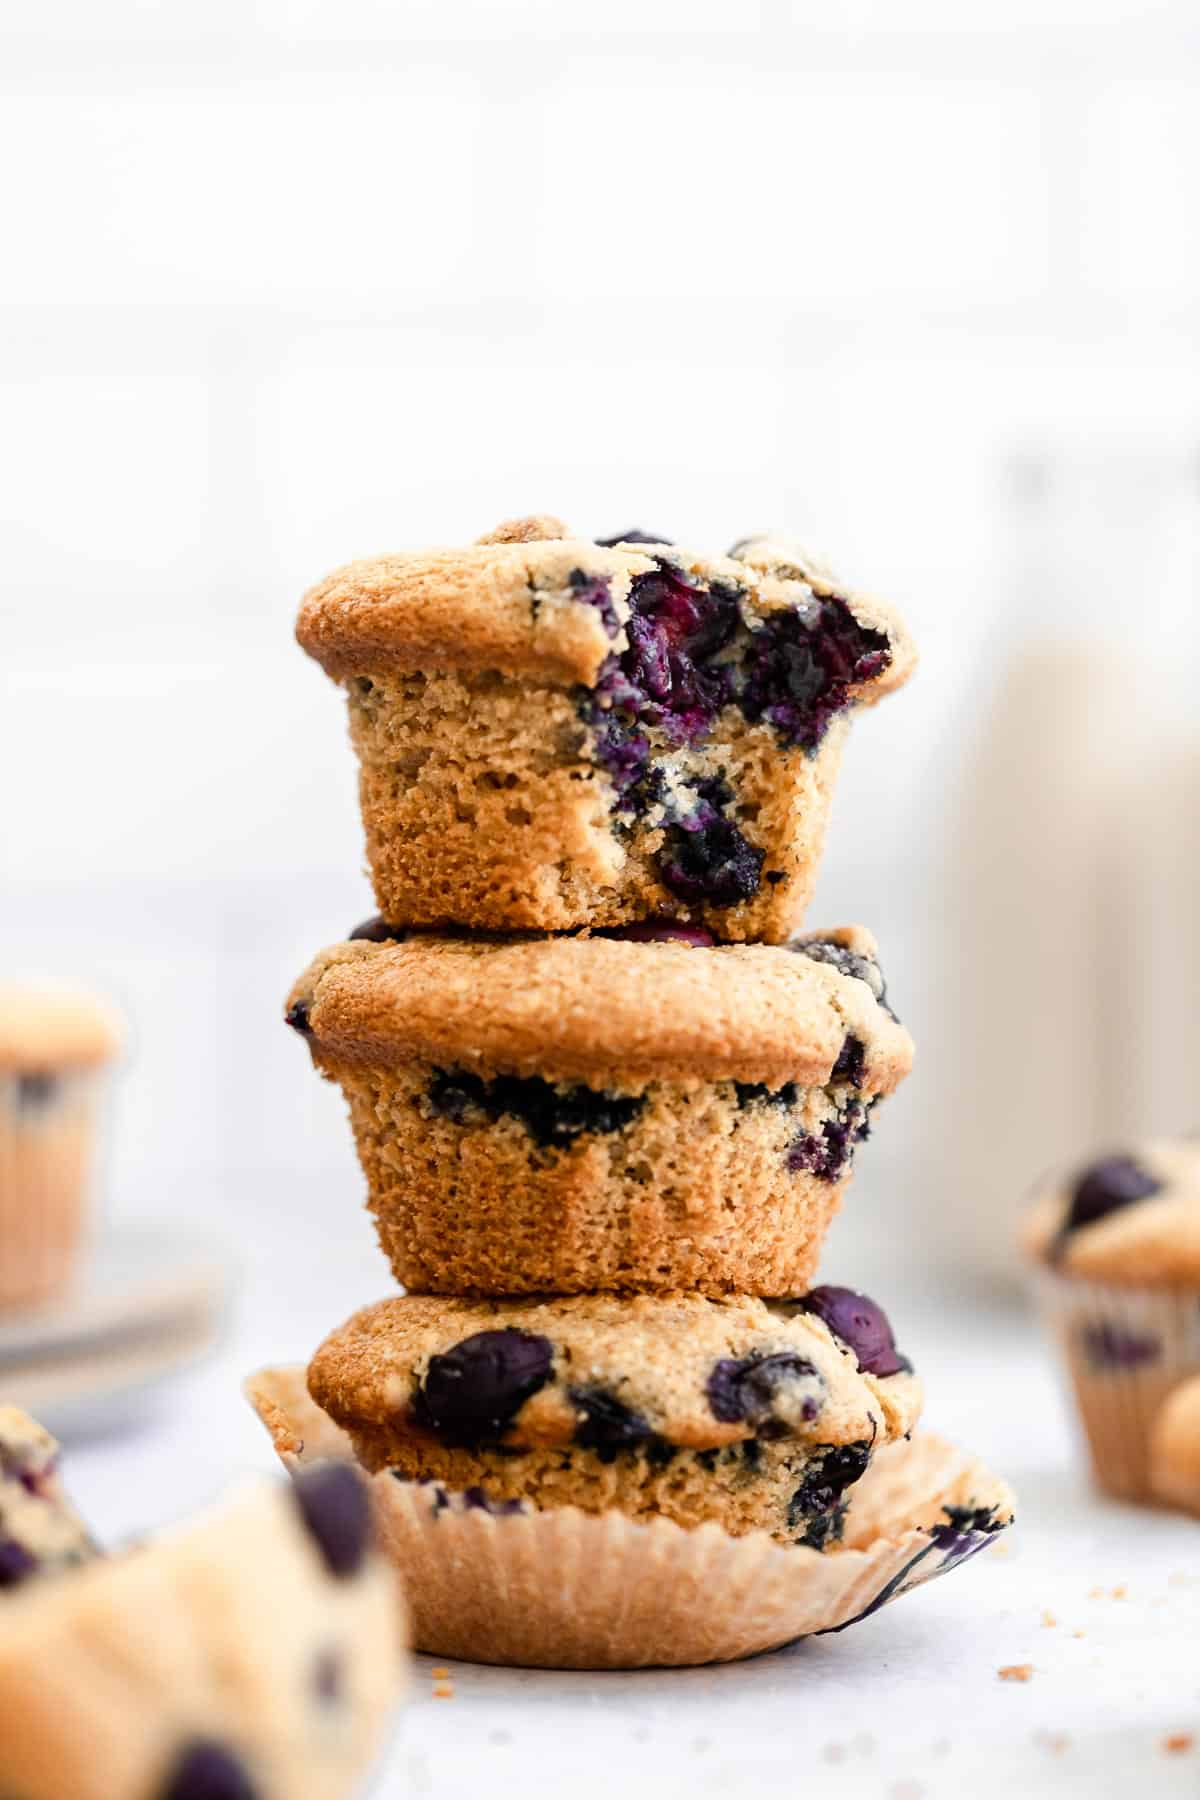 three blueberry muffins with a bite taken out